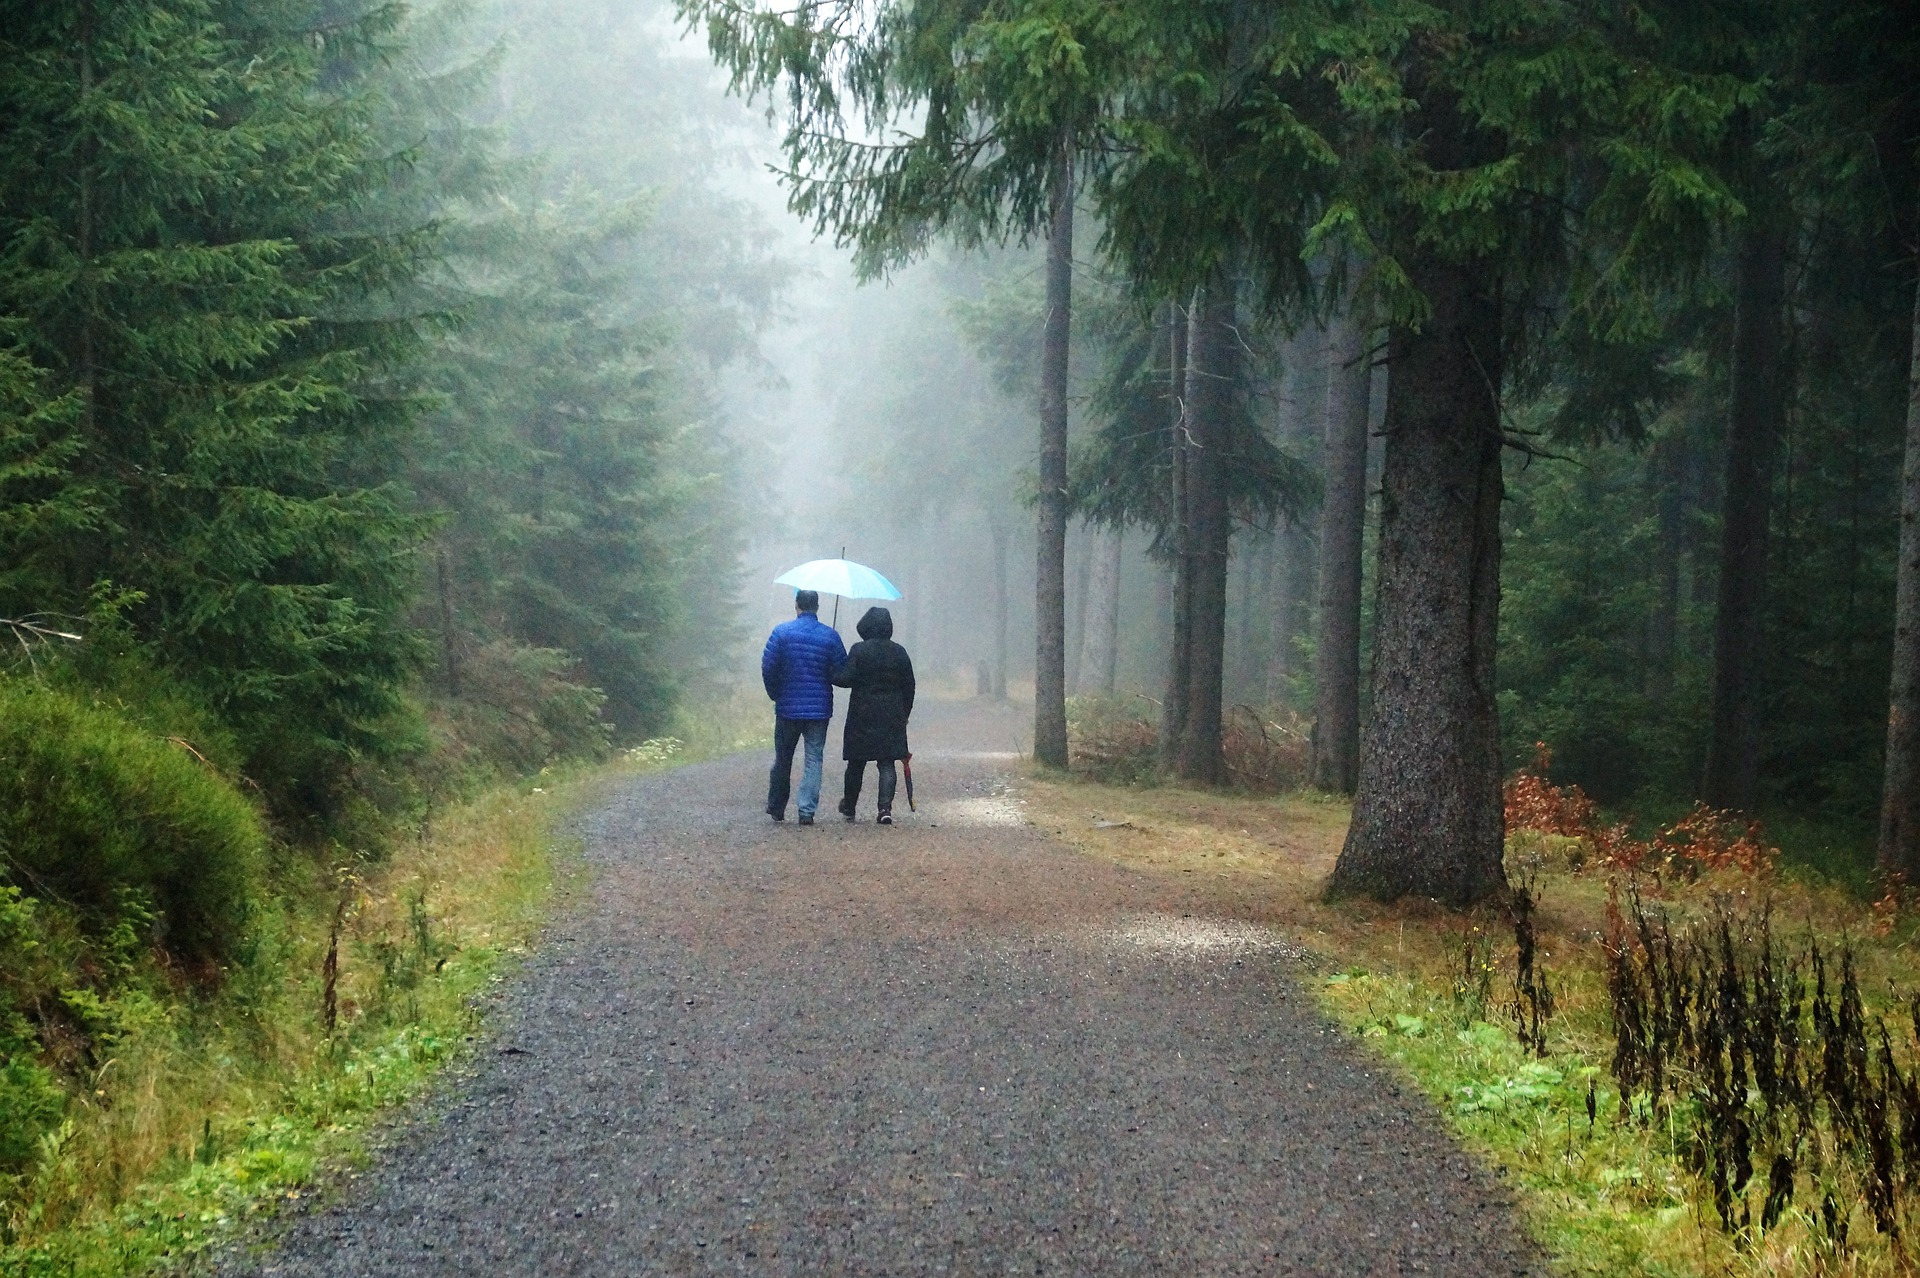 Couple in cloudy weather